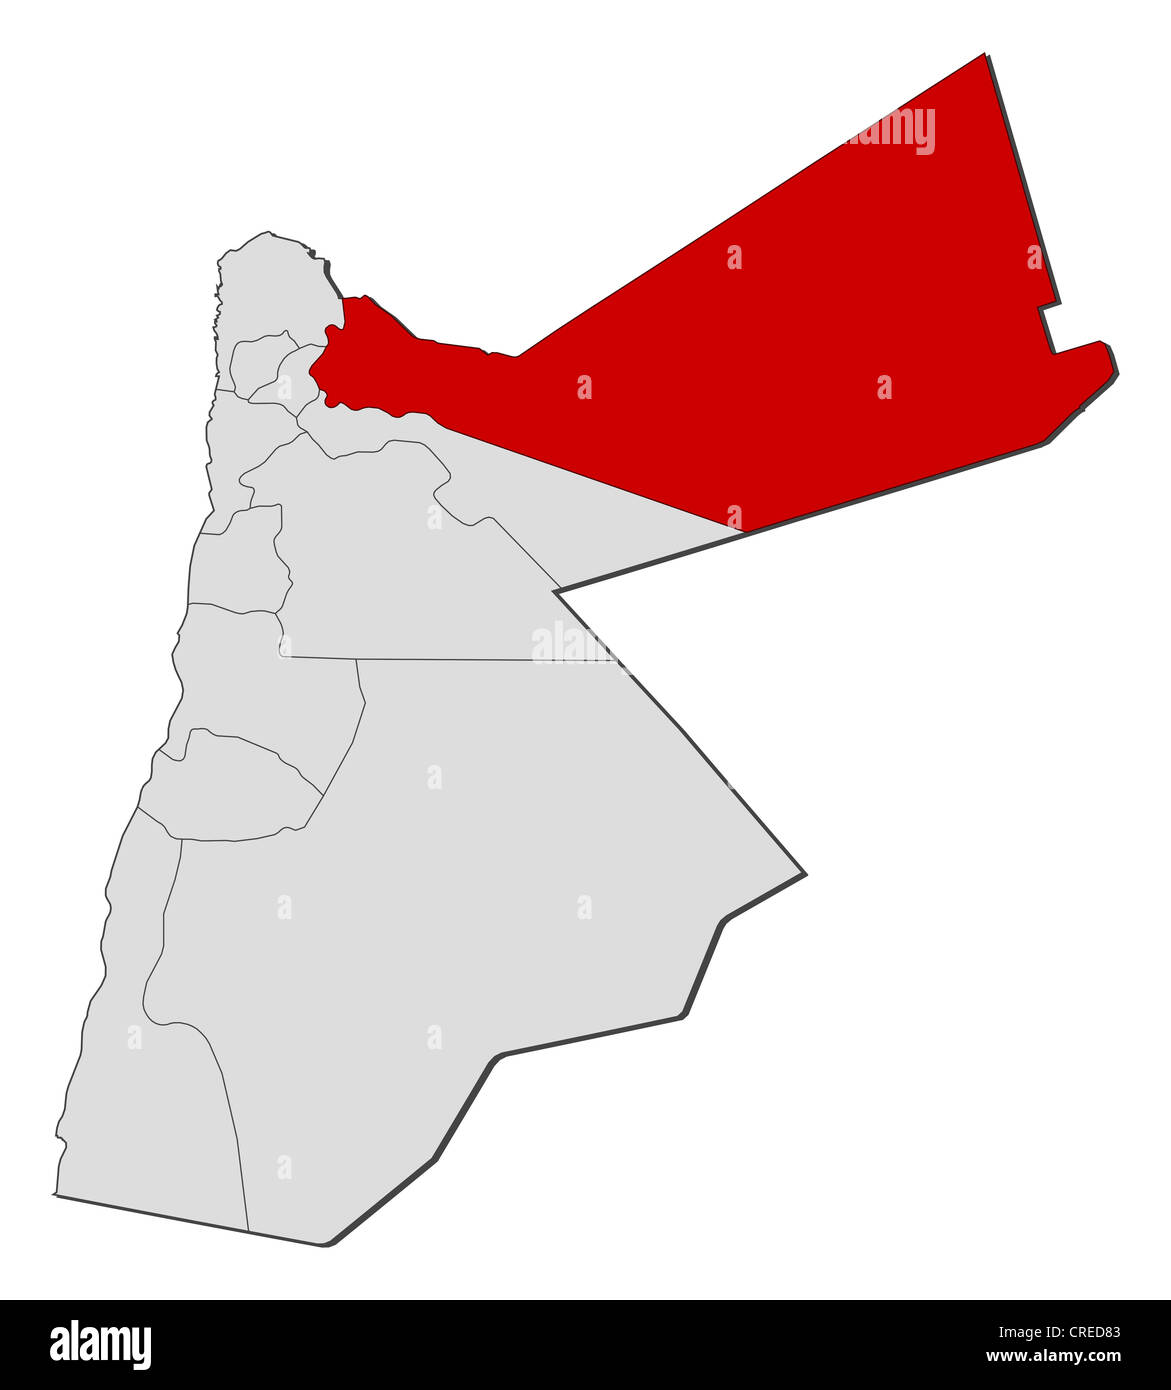 Jordan Political Map.Political Map Of Jordan With The Several Governorates Where Mafraq